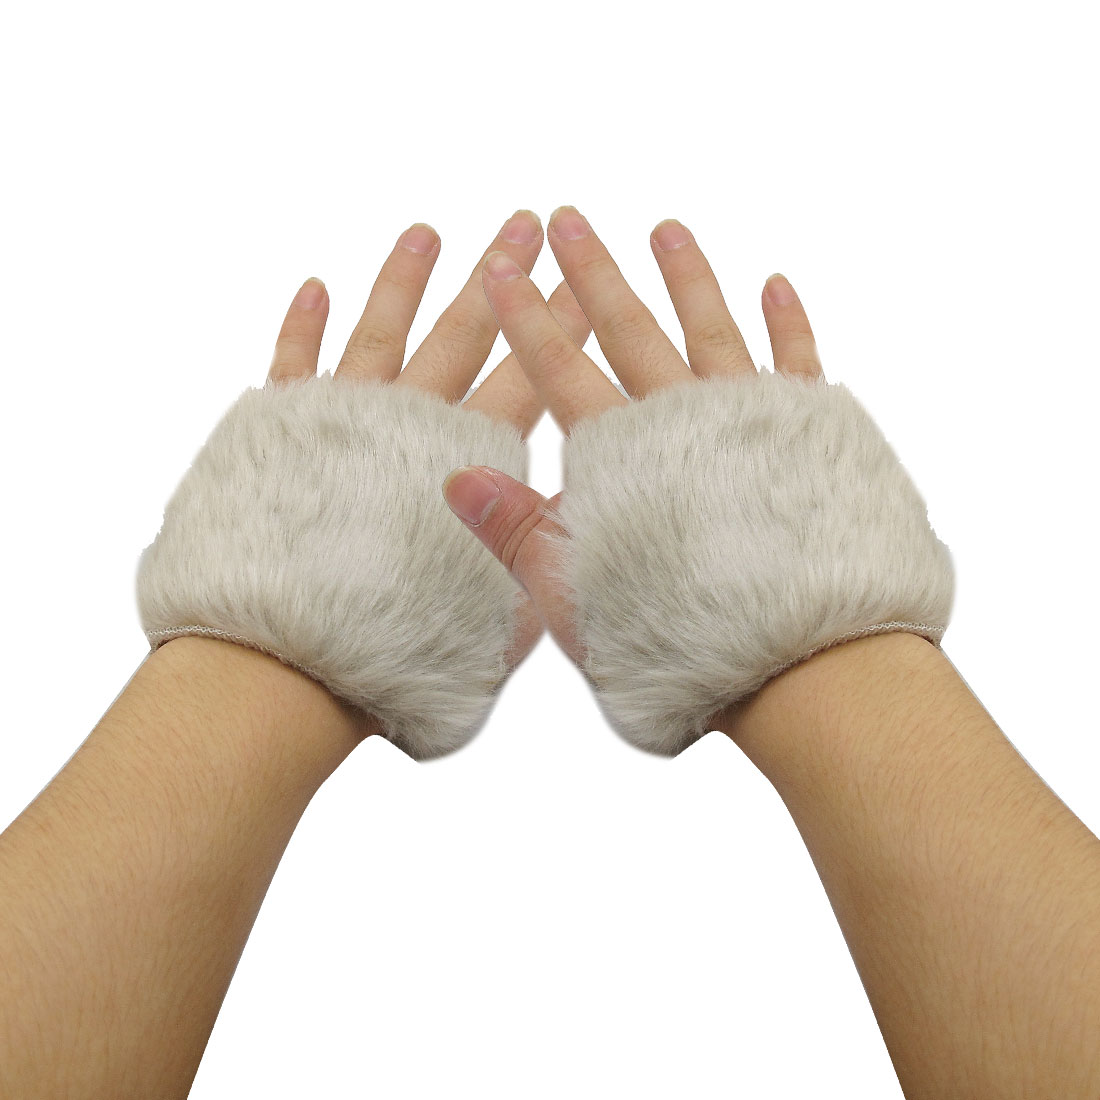 Pair Light Gray Faux Fur Covered Hand Wrist Warmers Gloves for Women